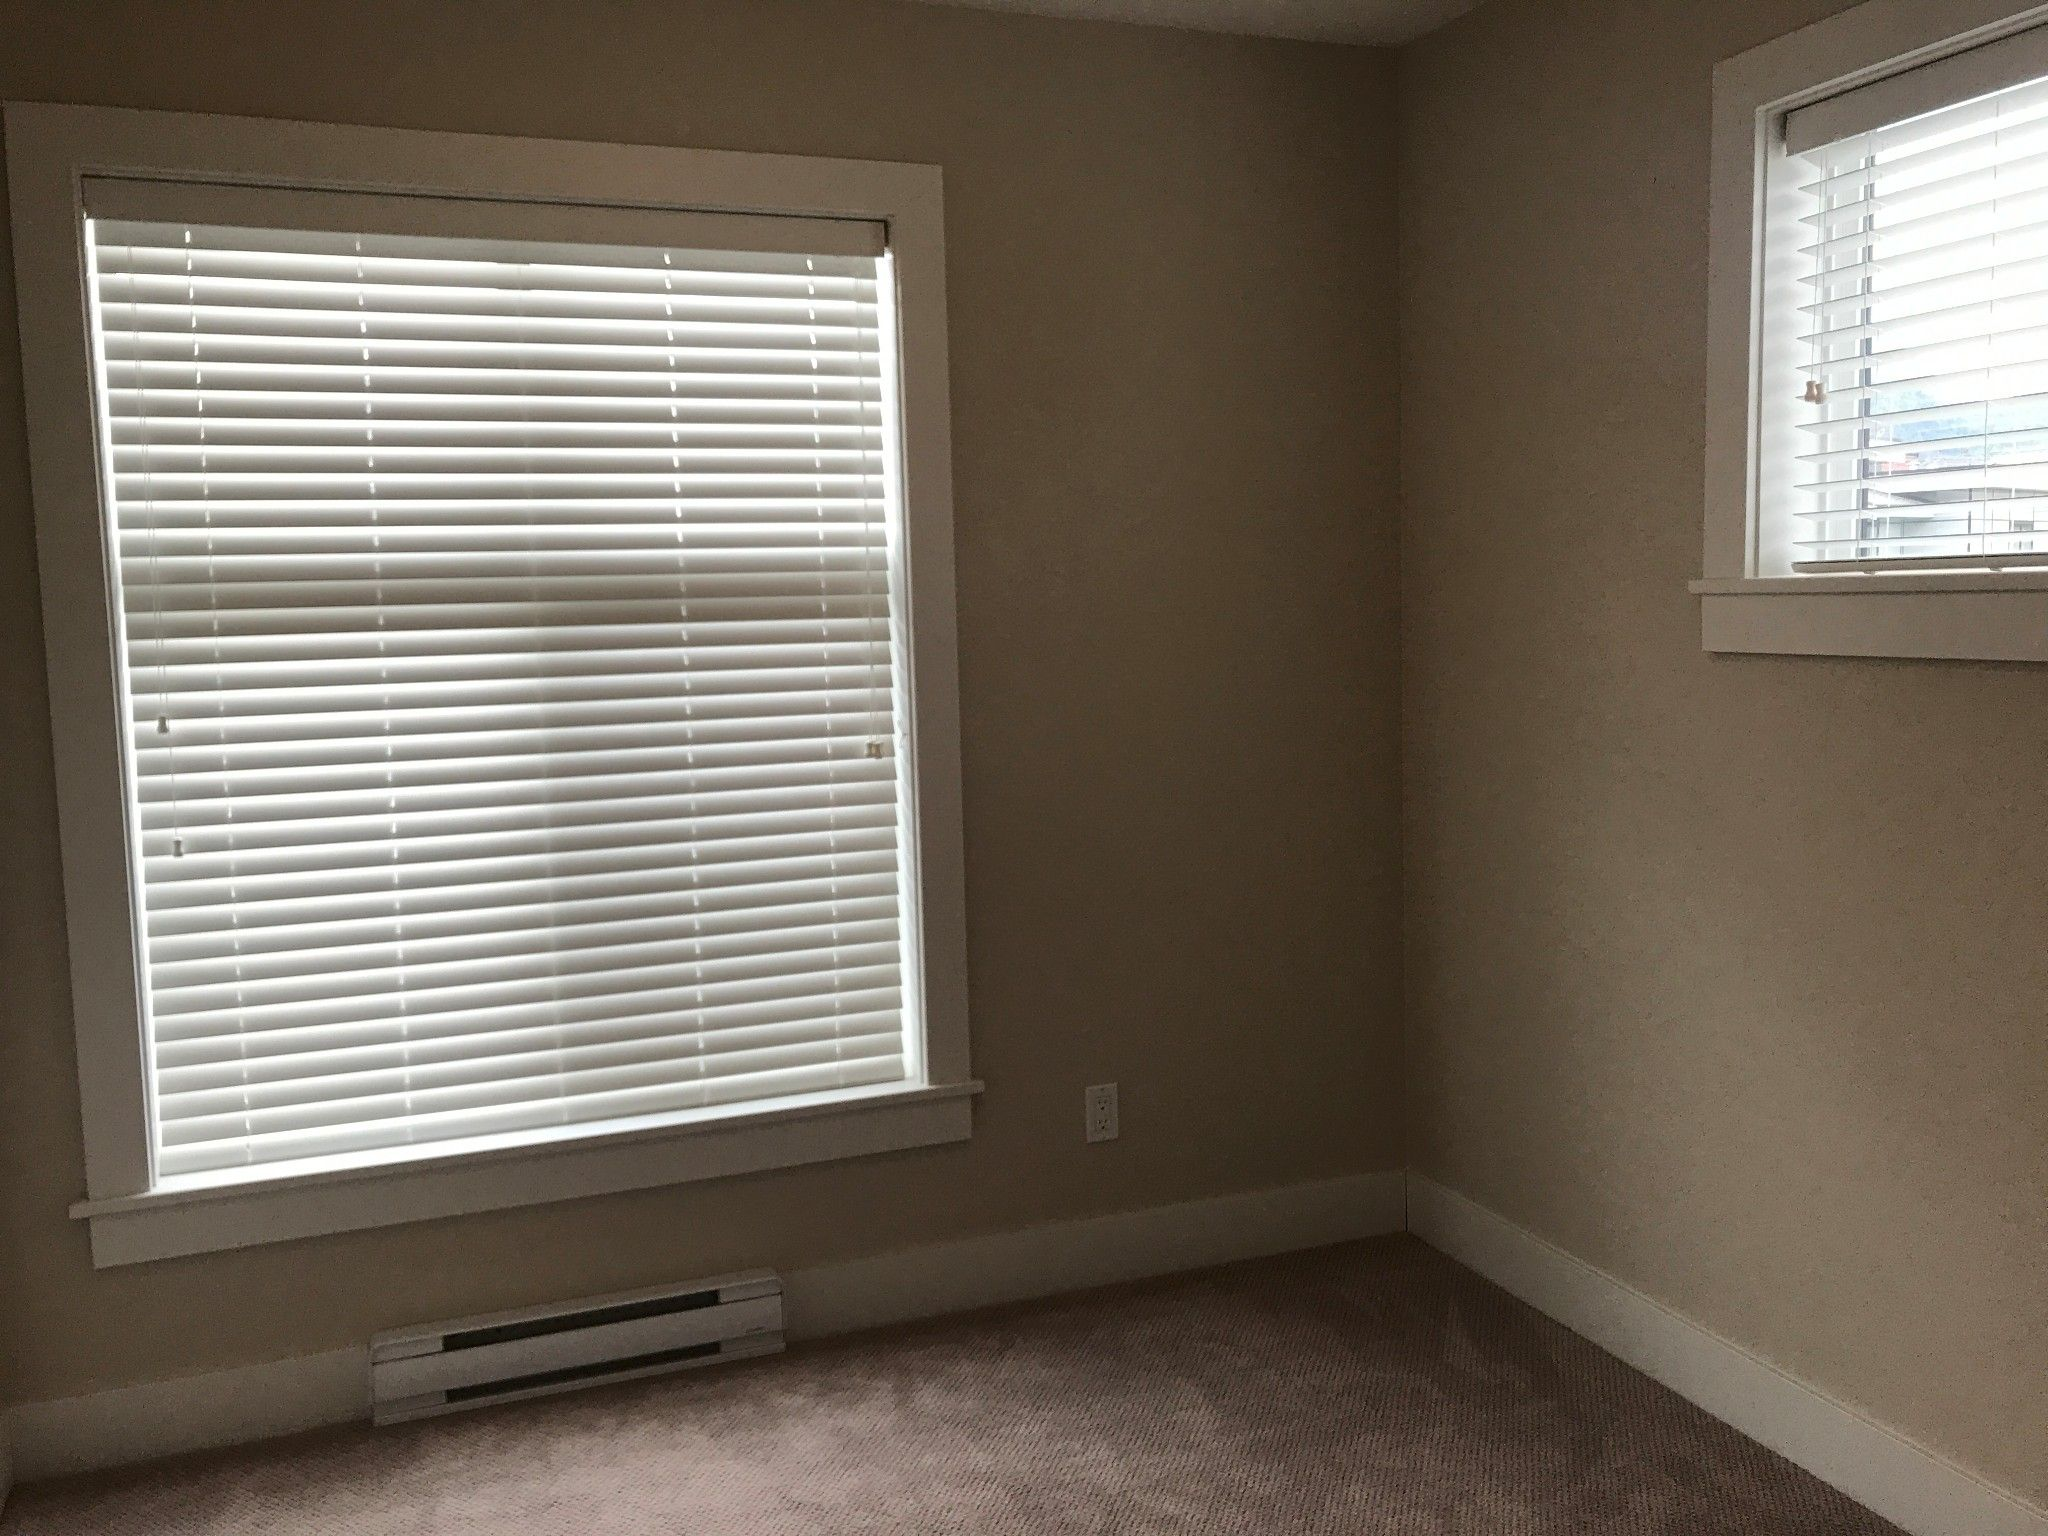 Photo 7: Photos: #38 45615 Tamihi Way in Chilliwack: Garrison Crossing Townhouse for rent